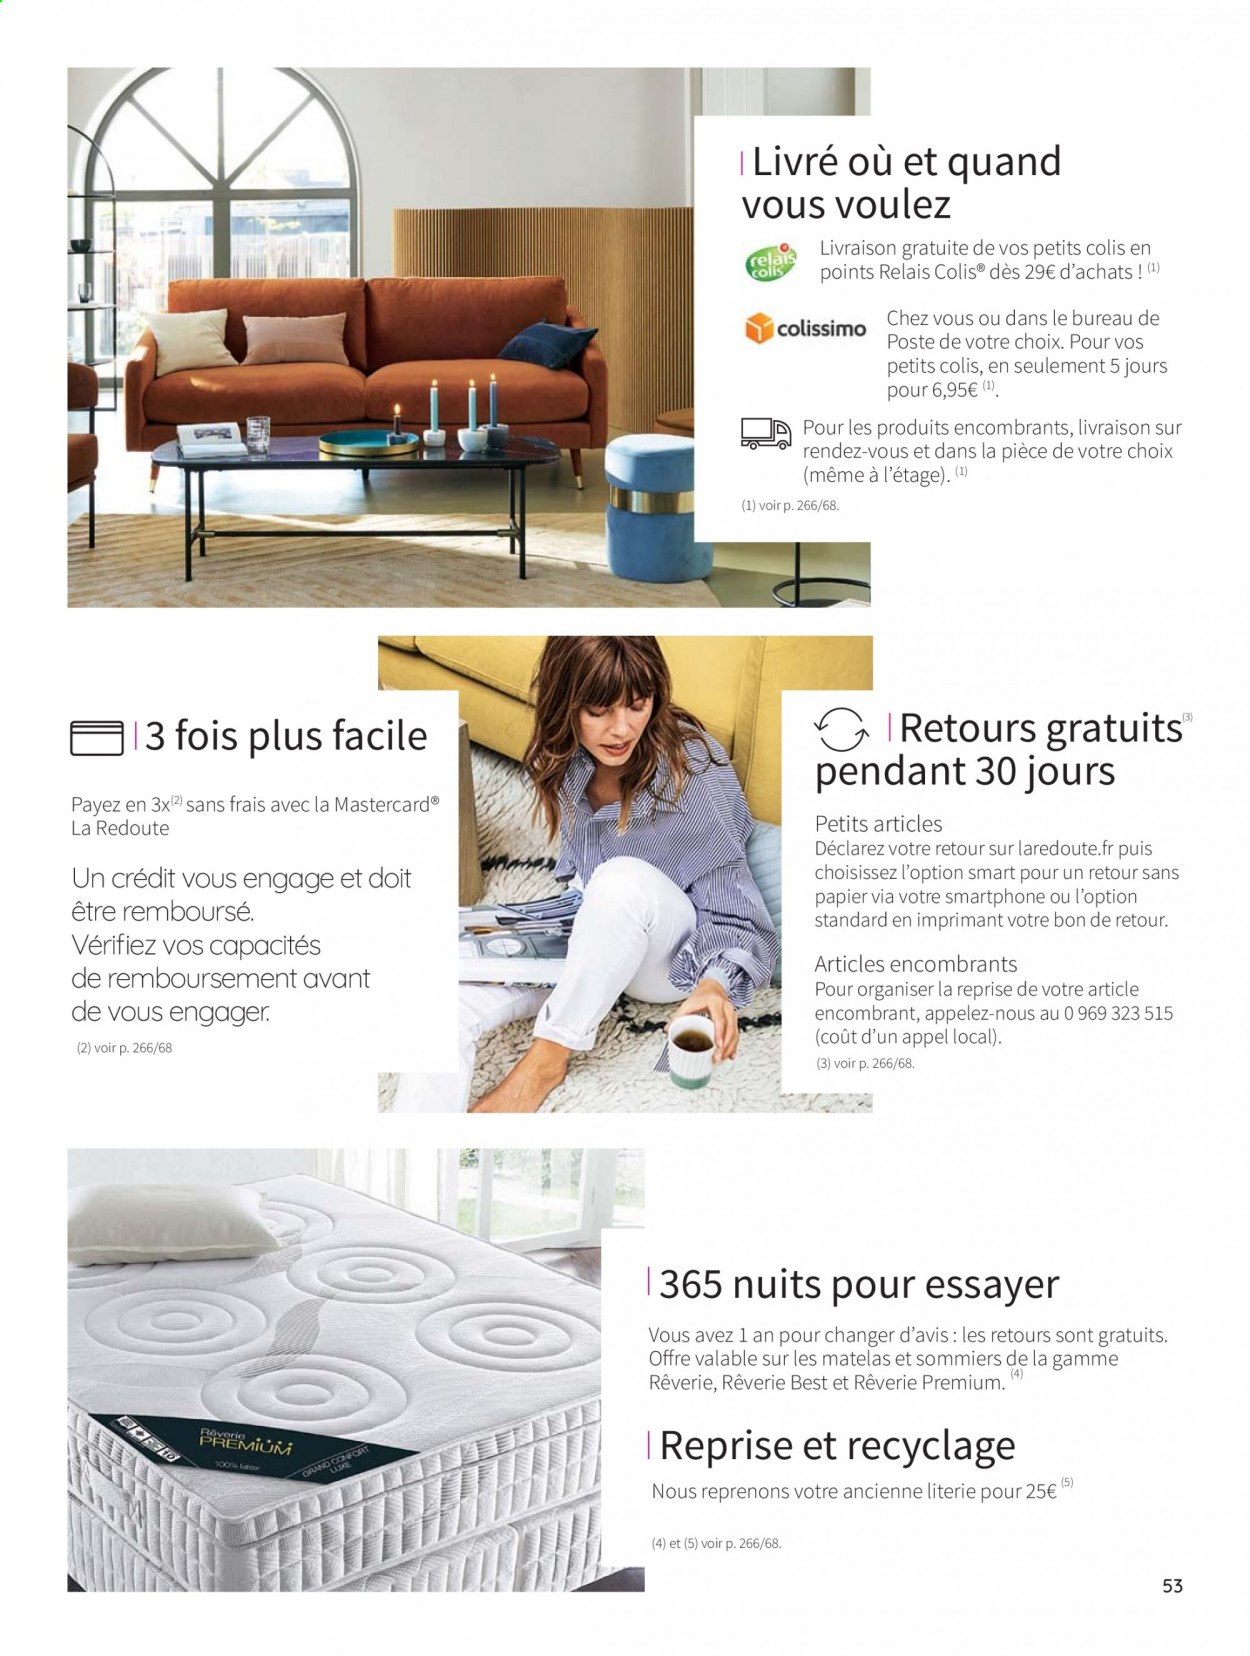 Catalogue La Redoute - 31.08.2020 - 30.06.2021. Page 53.